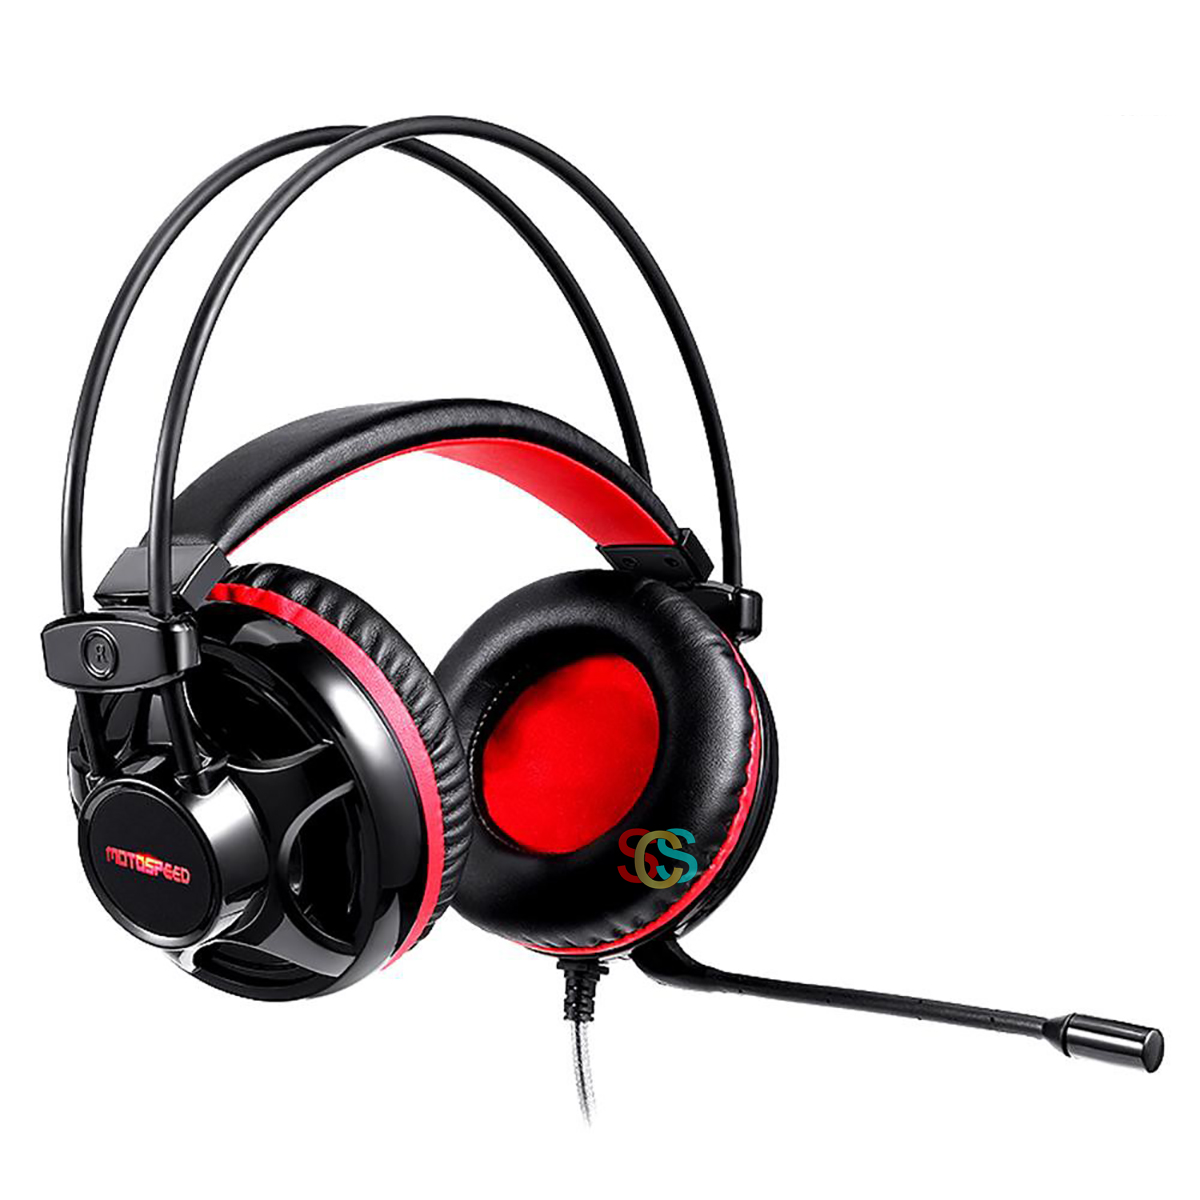 Motospeed H11 Wired Black-Red Gaming Headphone